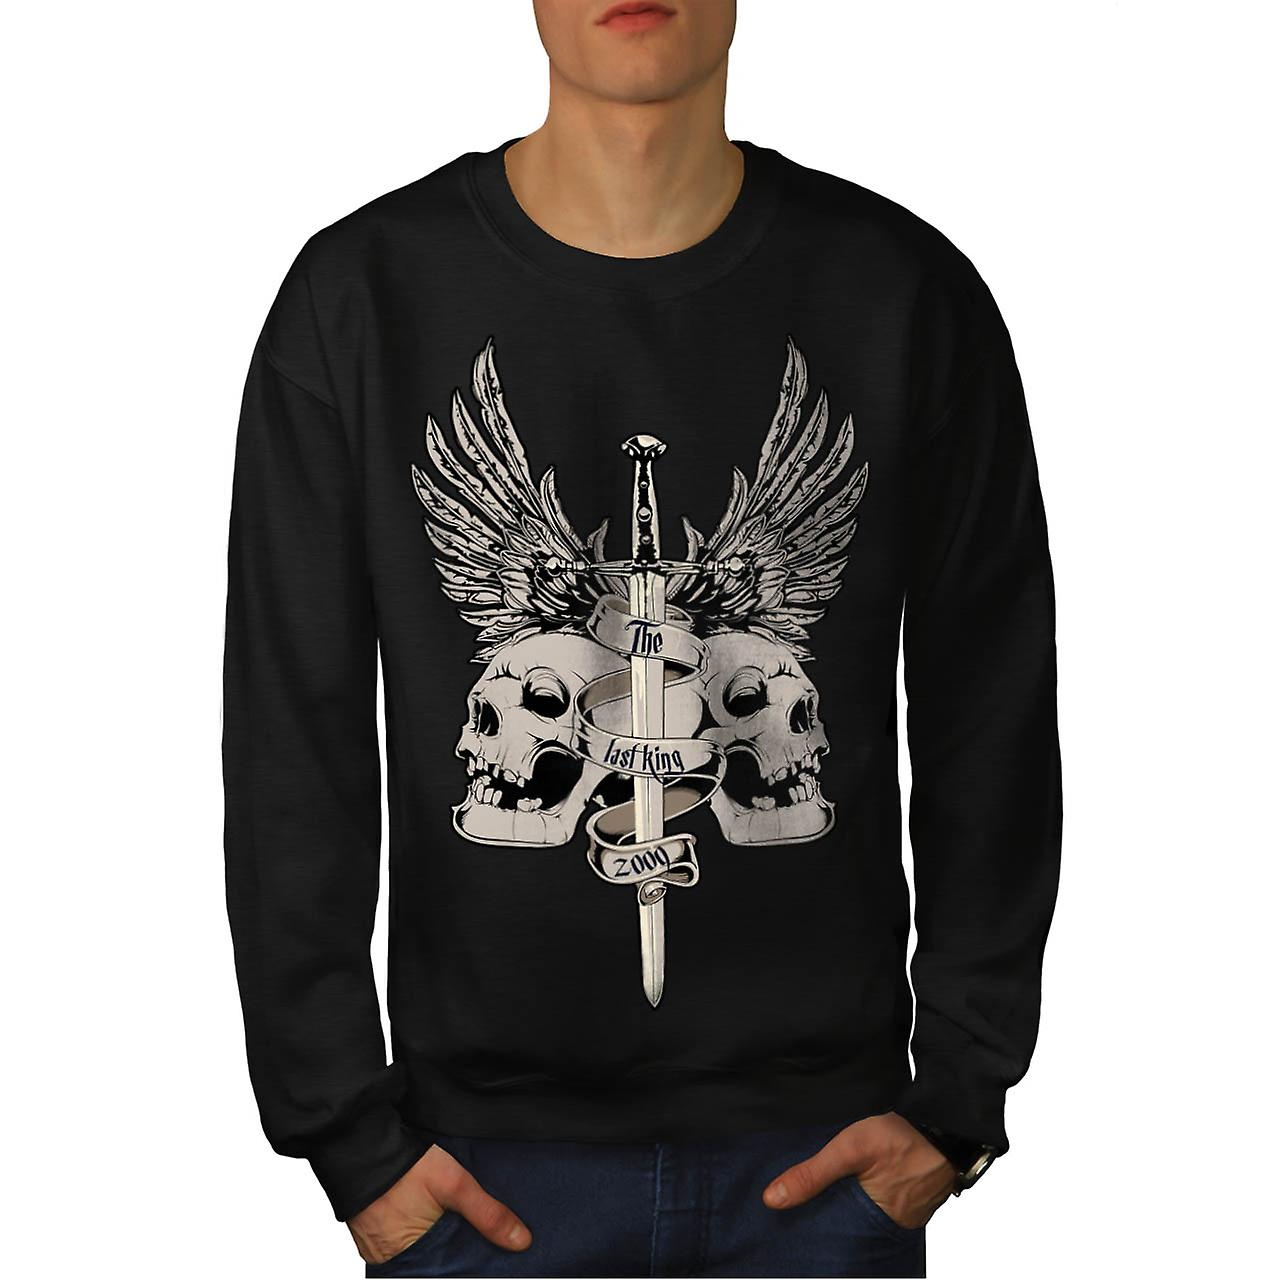 The Last King Leader Skull Rule Men Black Sweatshirt | Wellcoda